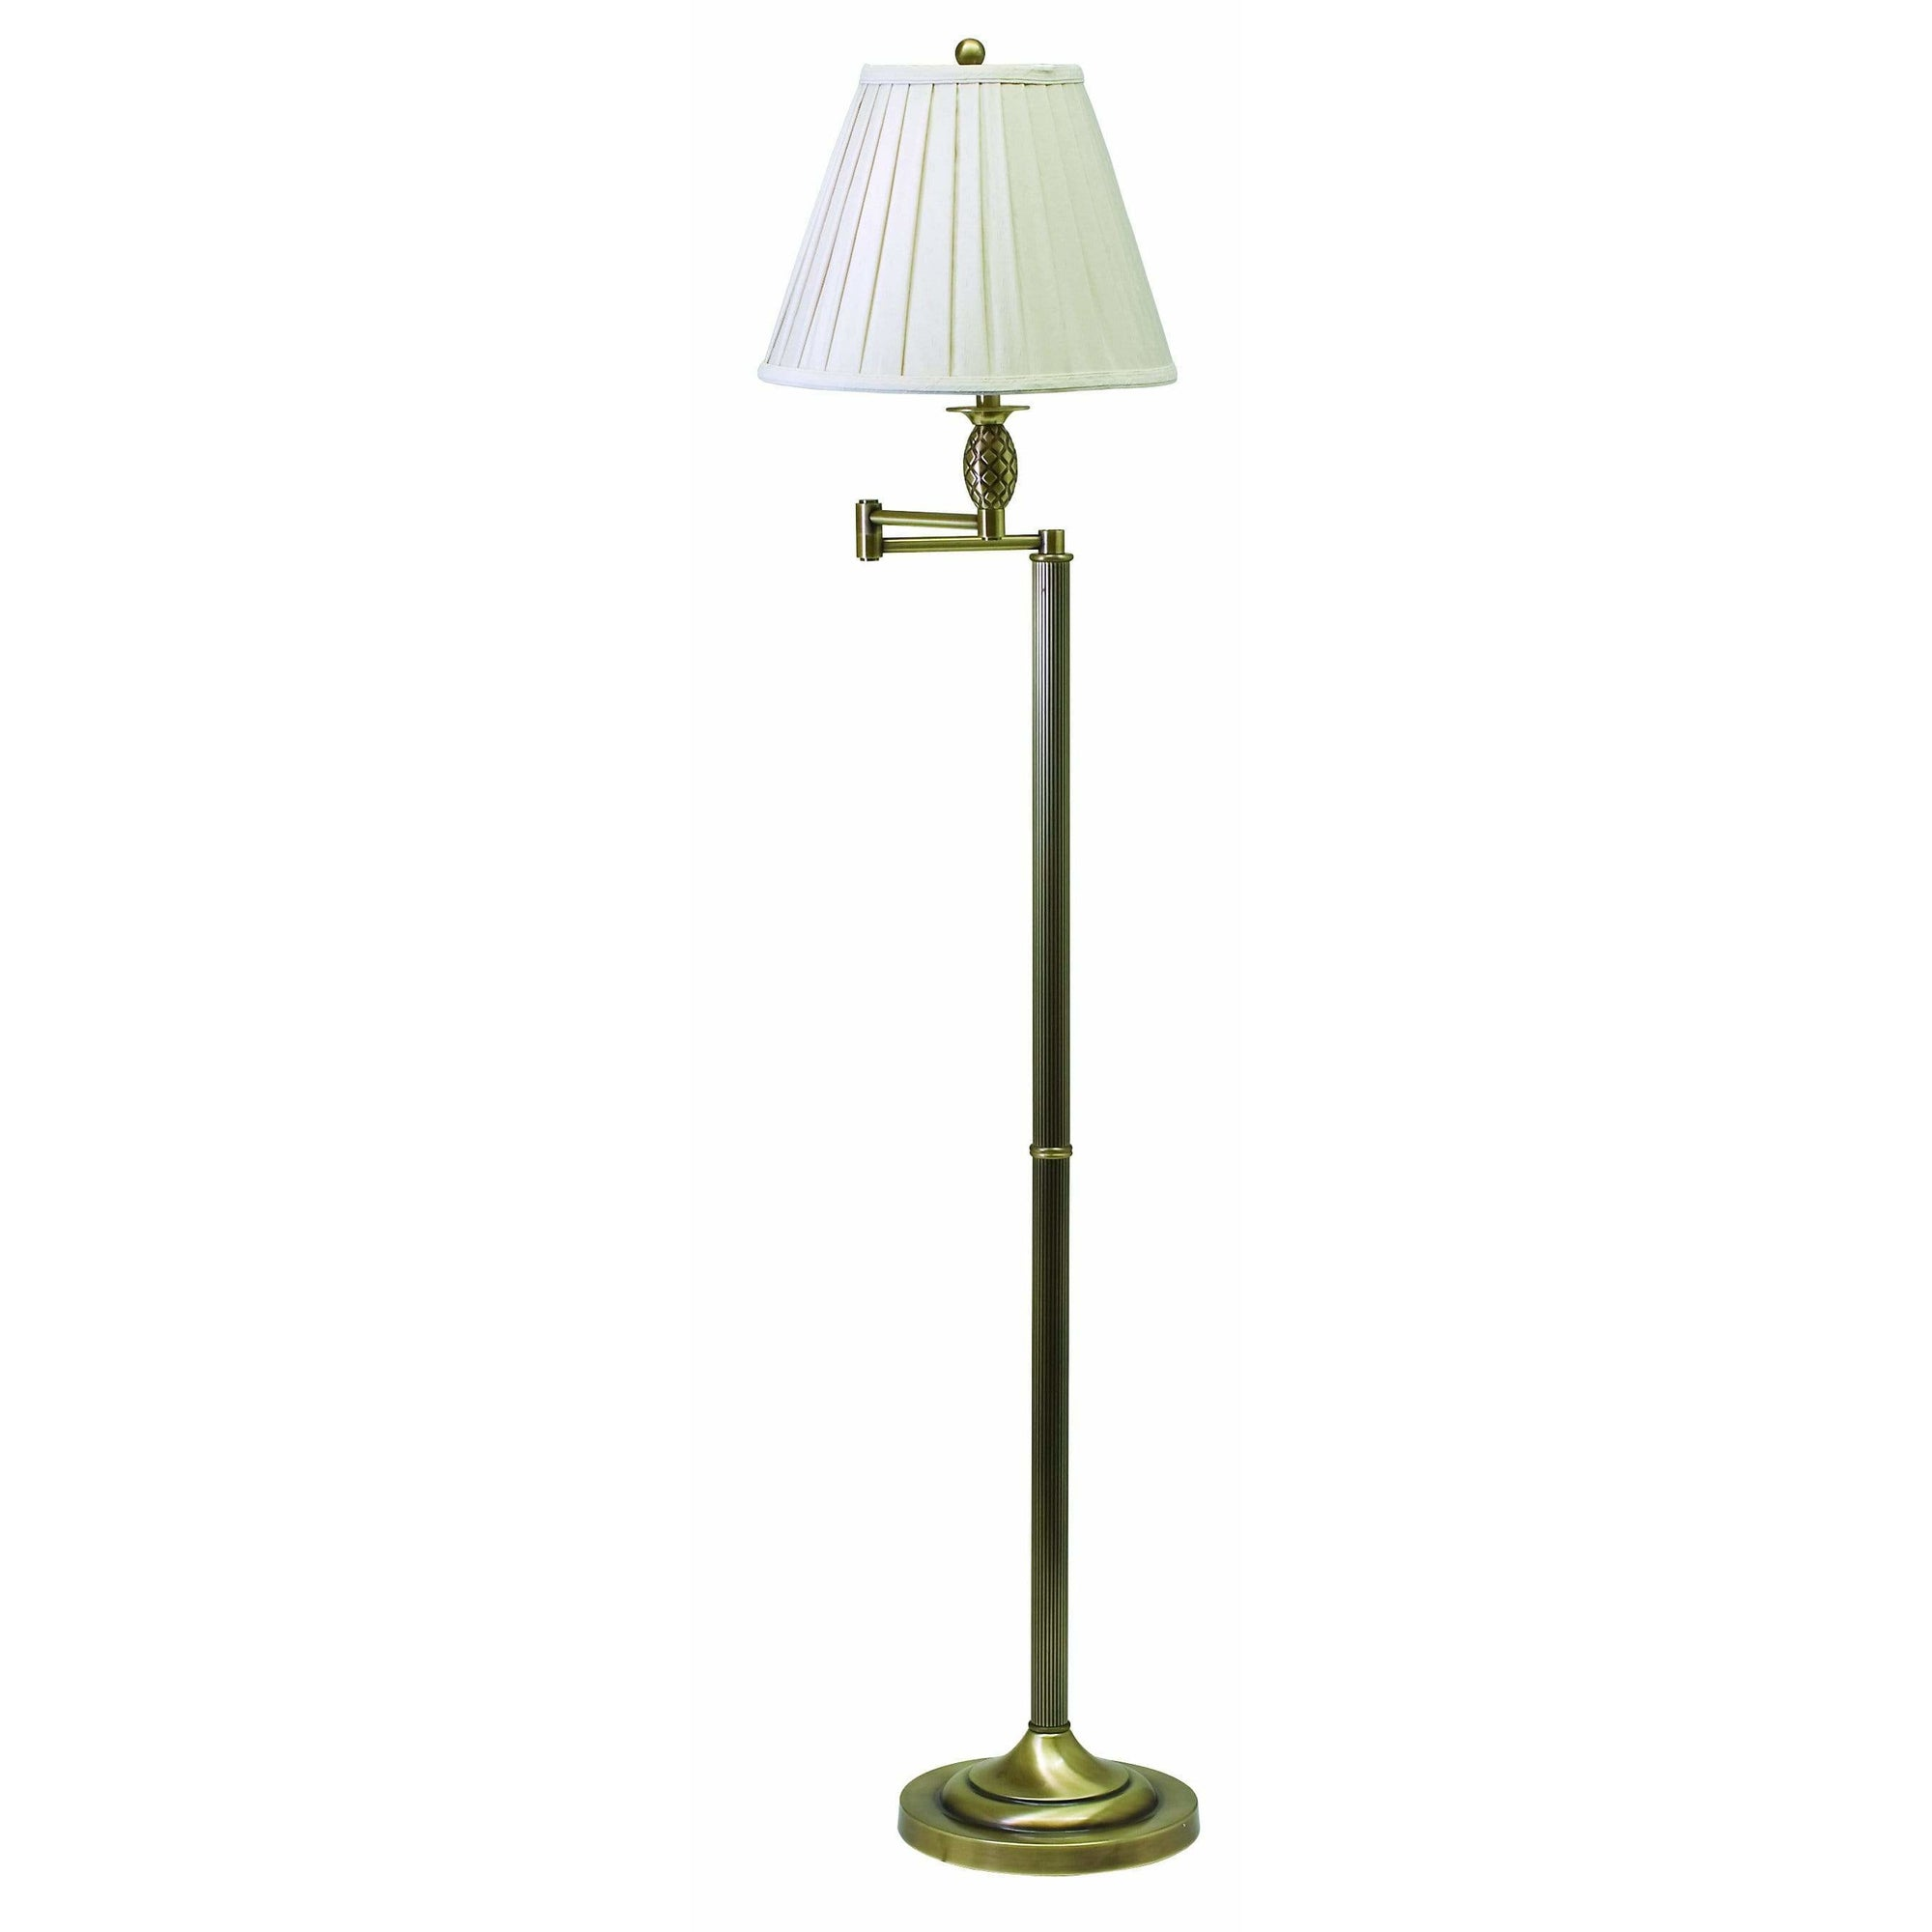 House Of Troy Floor Lamps Vergennes Floor Lamp by House Of Troy VG400-AB